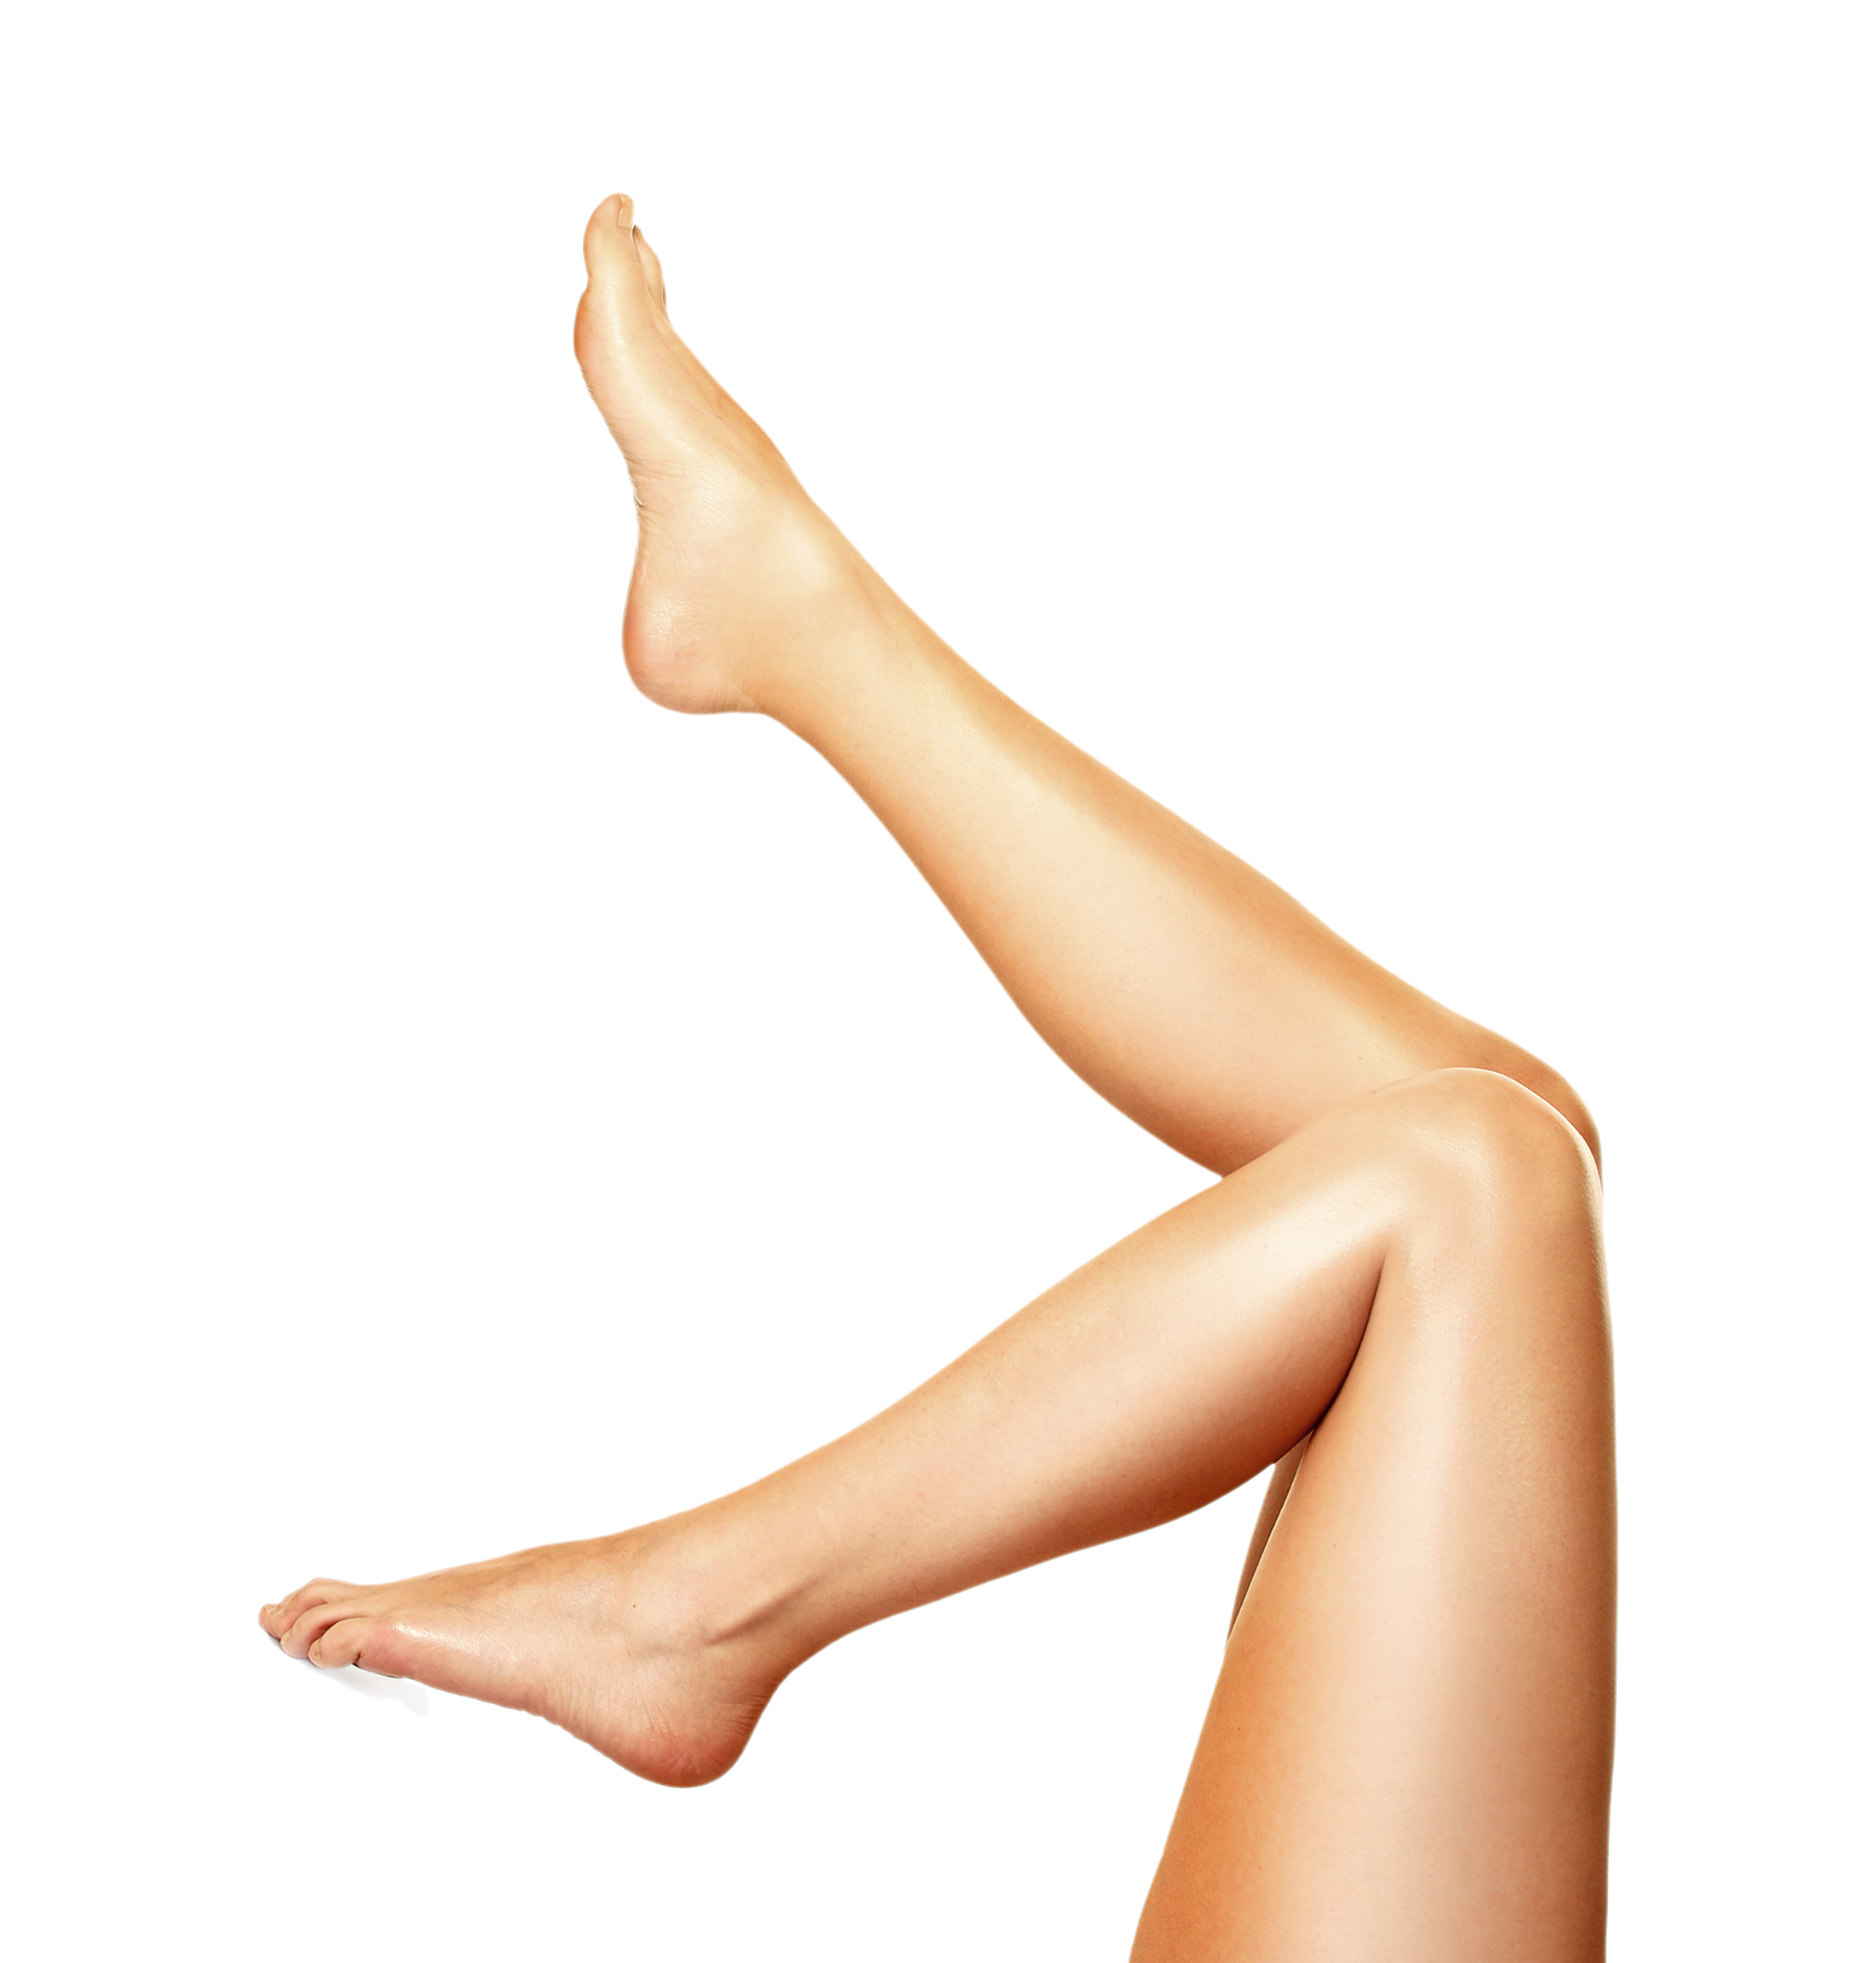 One leg png